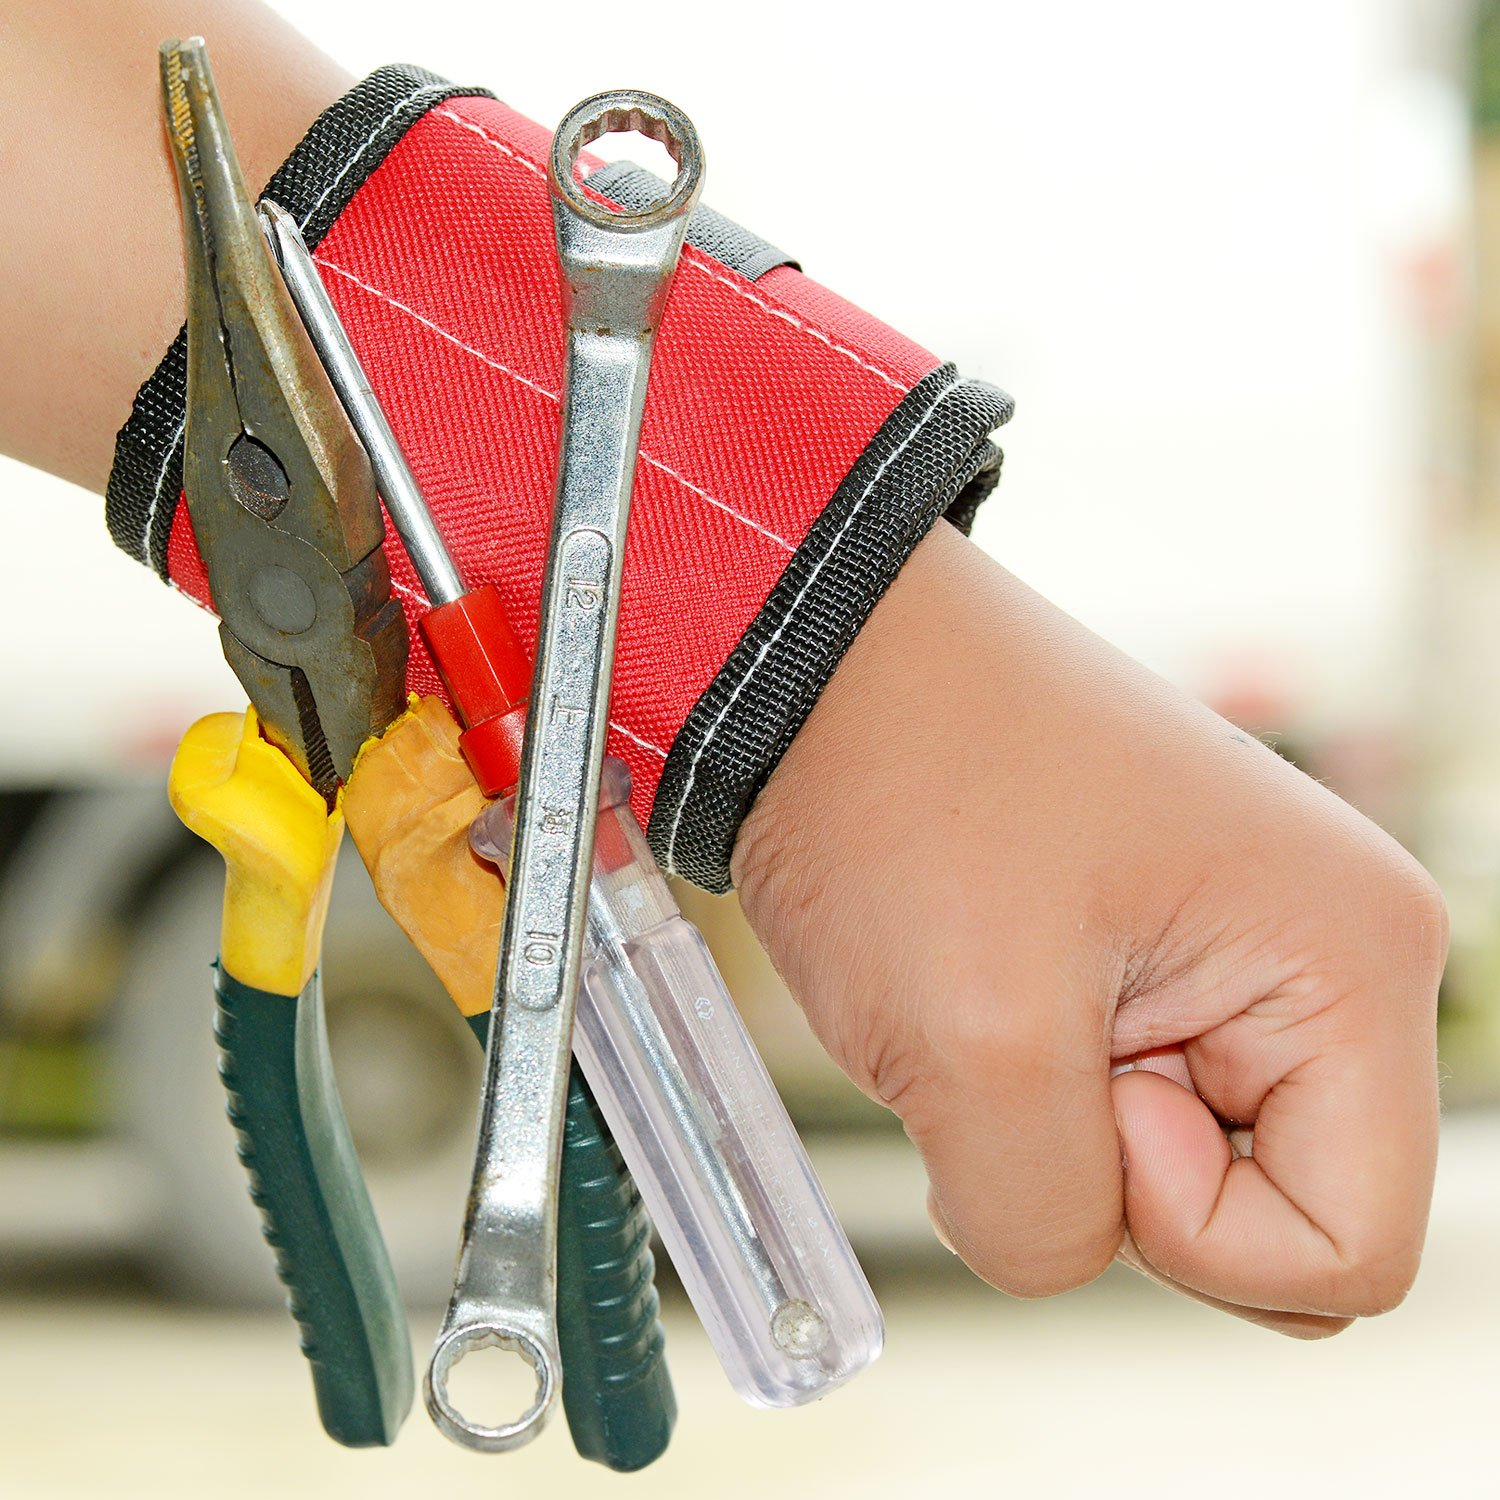 magnetic tool holder wrist band